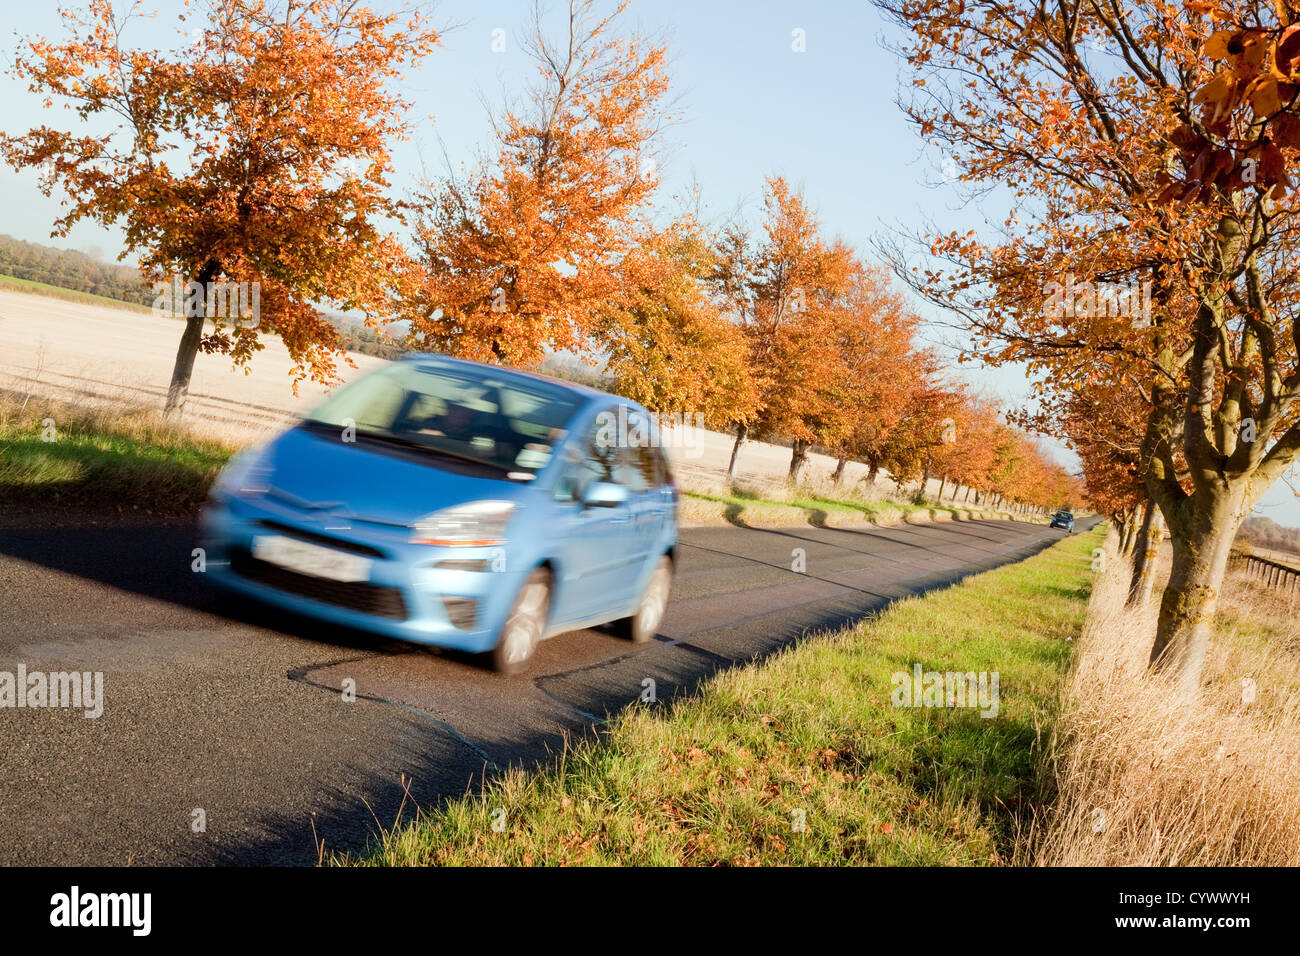 A blue car driving on a country roads roads in autumn, cambridgeshire UK - Stock Image